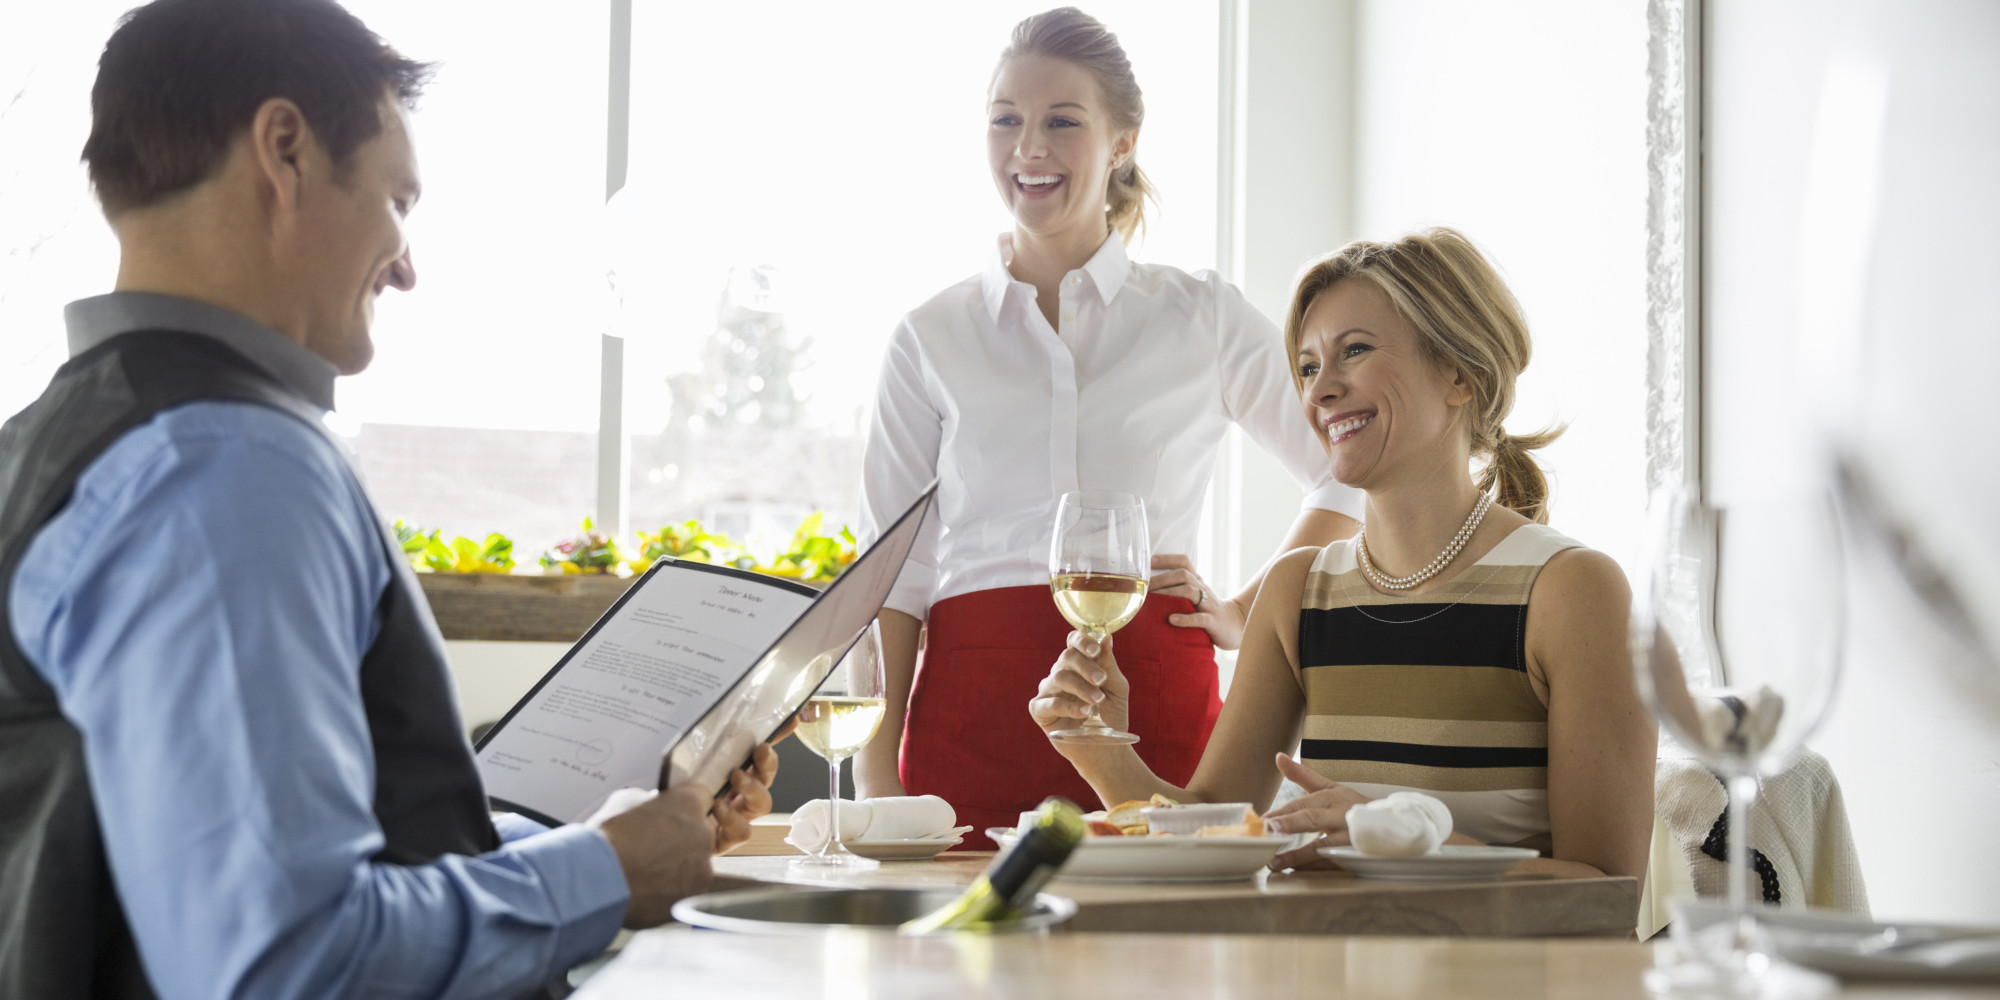 How to Order Wine at a Restaurant: Avoid Embarrassment ...